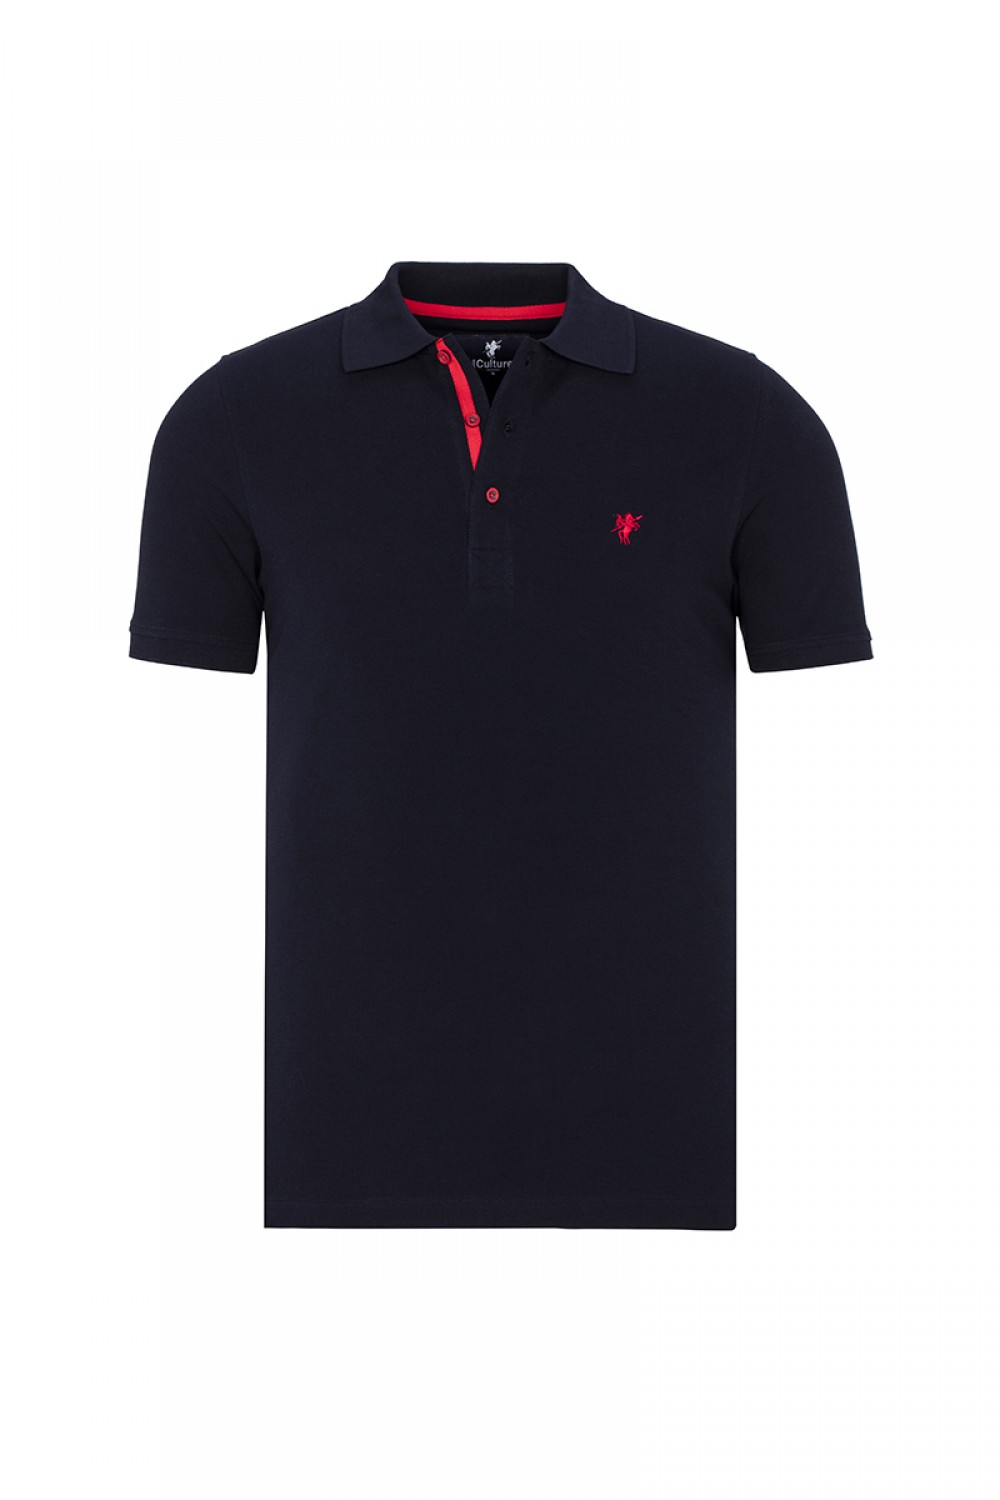 Men's Poloshirt Knitted Navy-Red Cotton